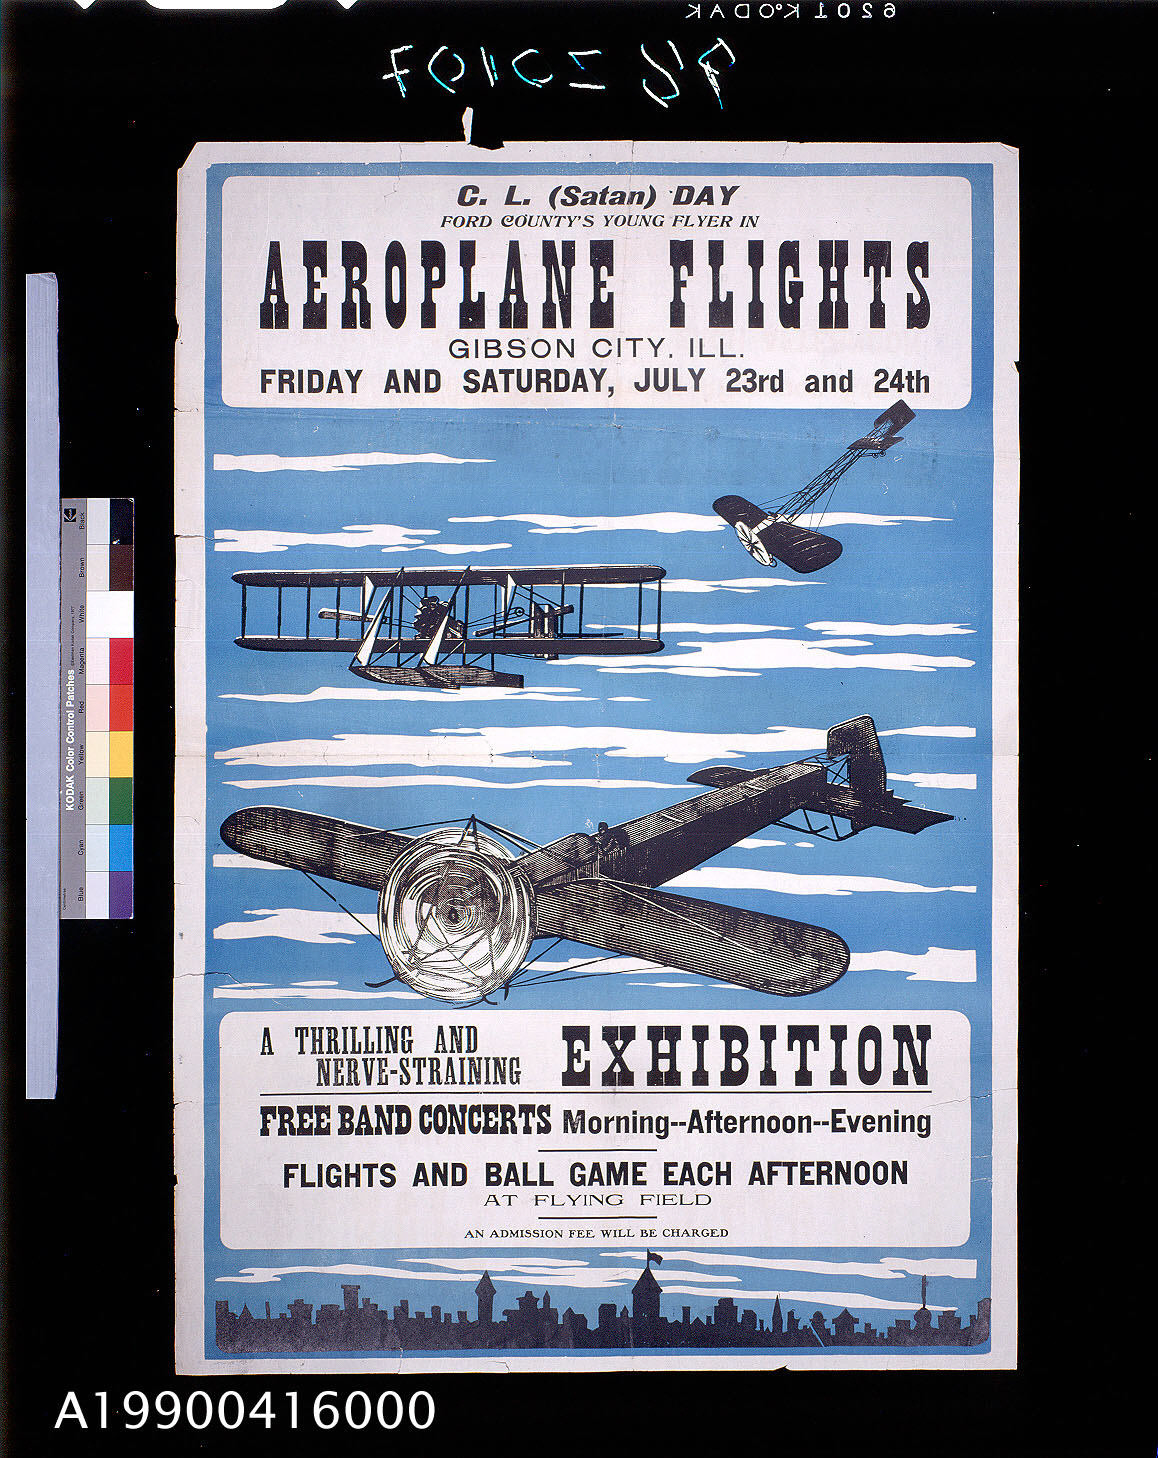 Image of : Aeroplane Flights A Thrilling and Nerve-Straining Exhibition